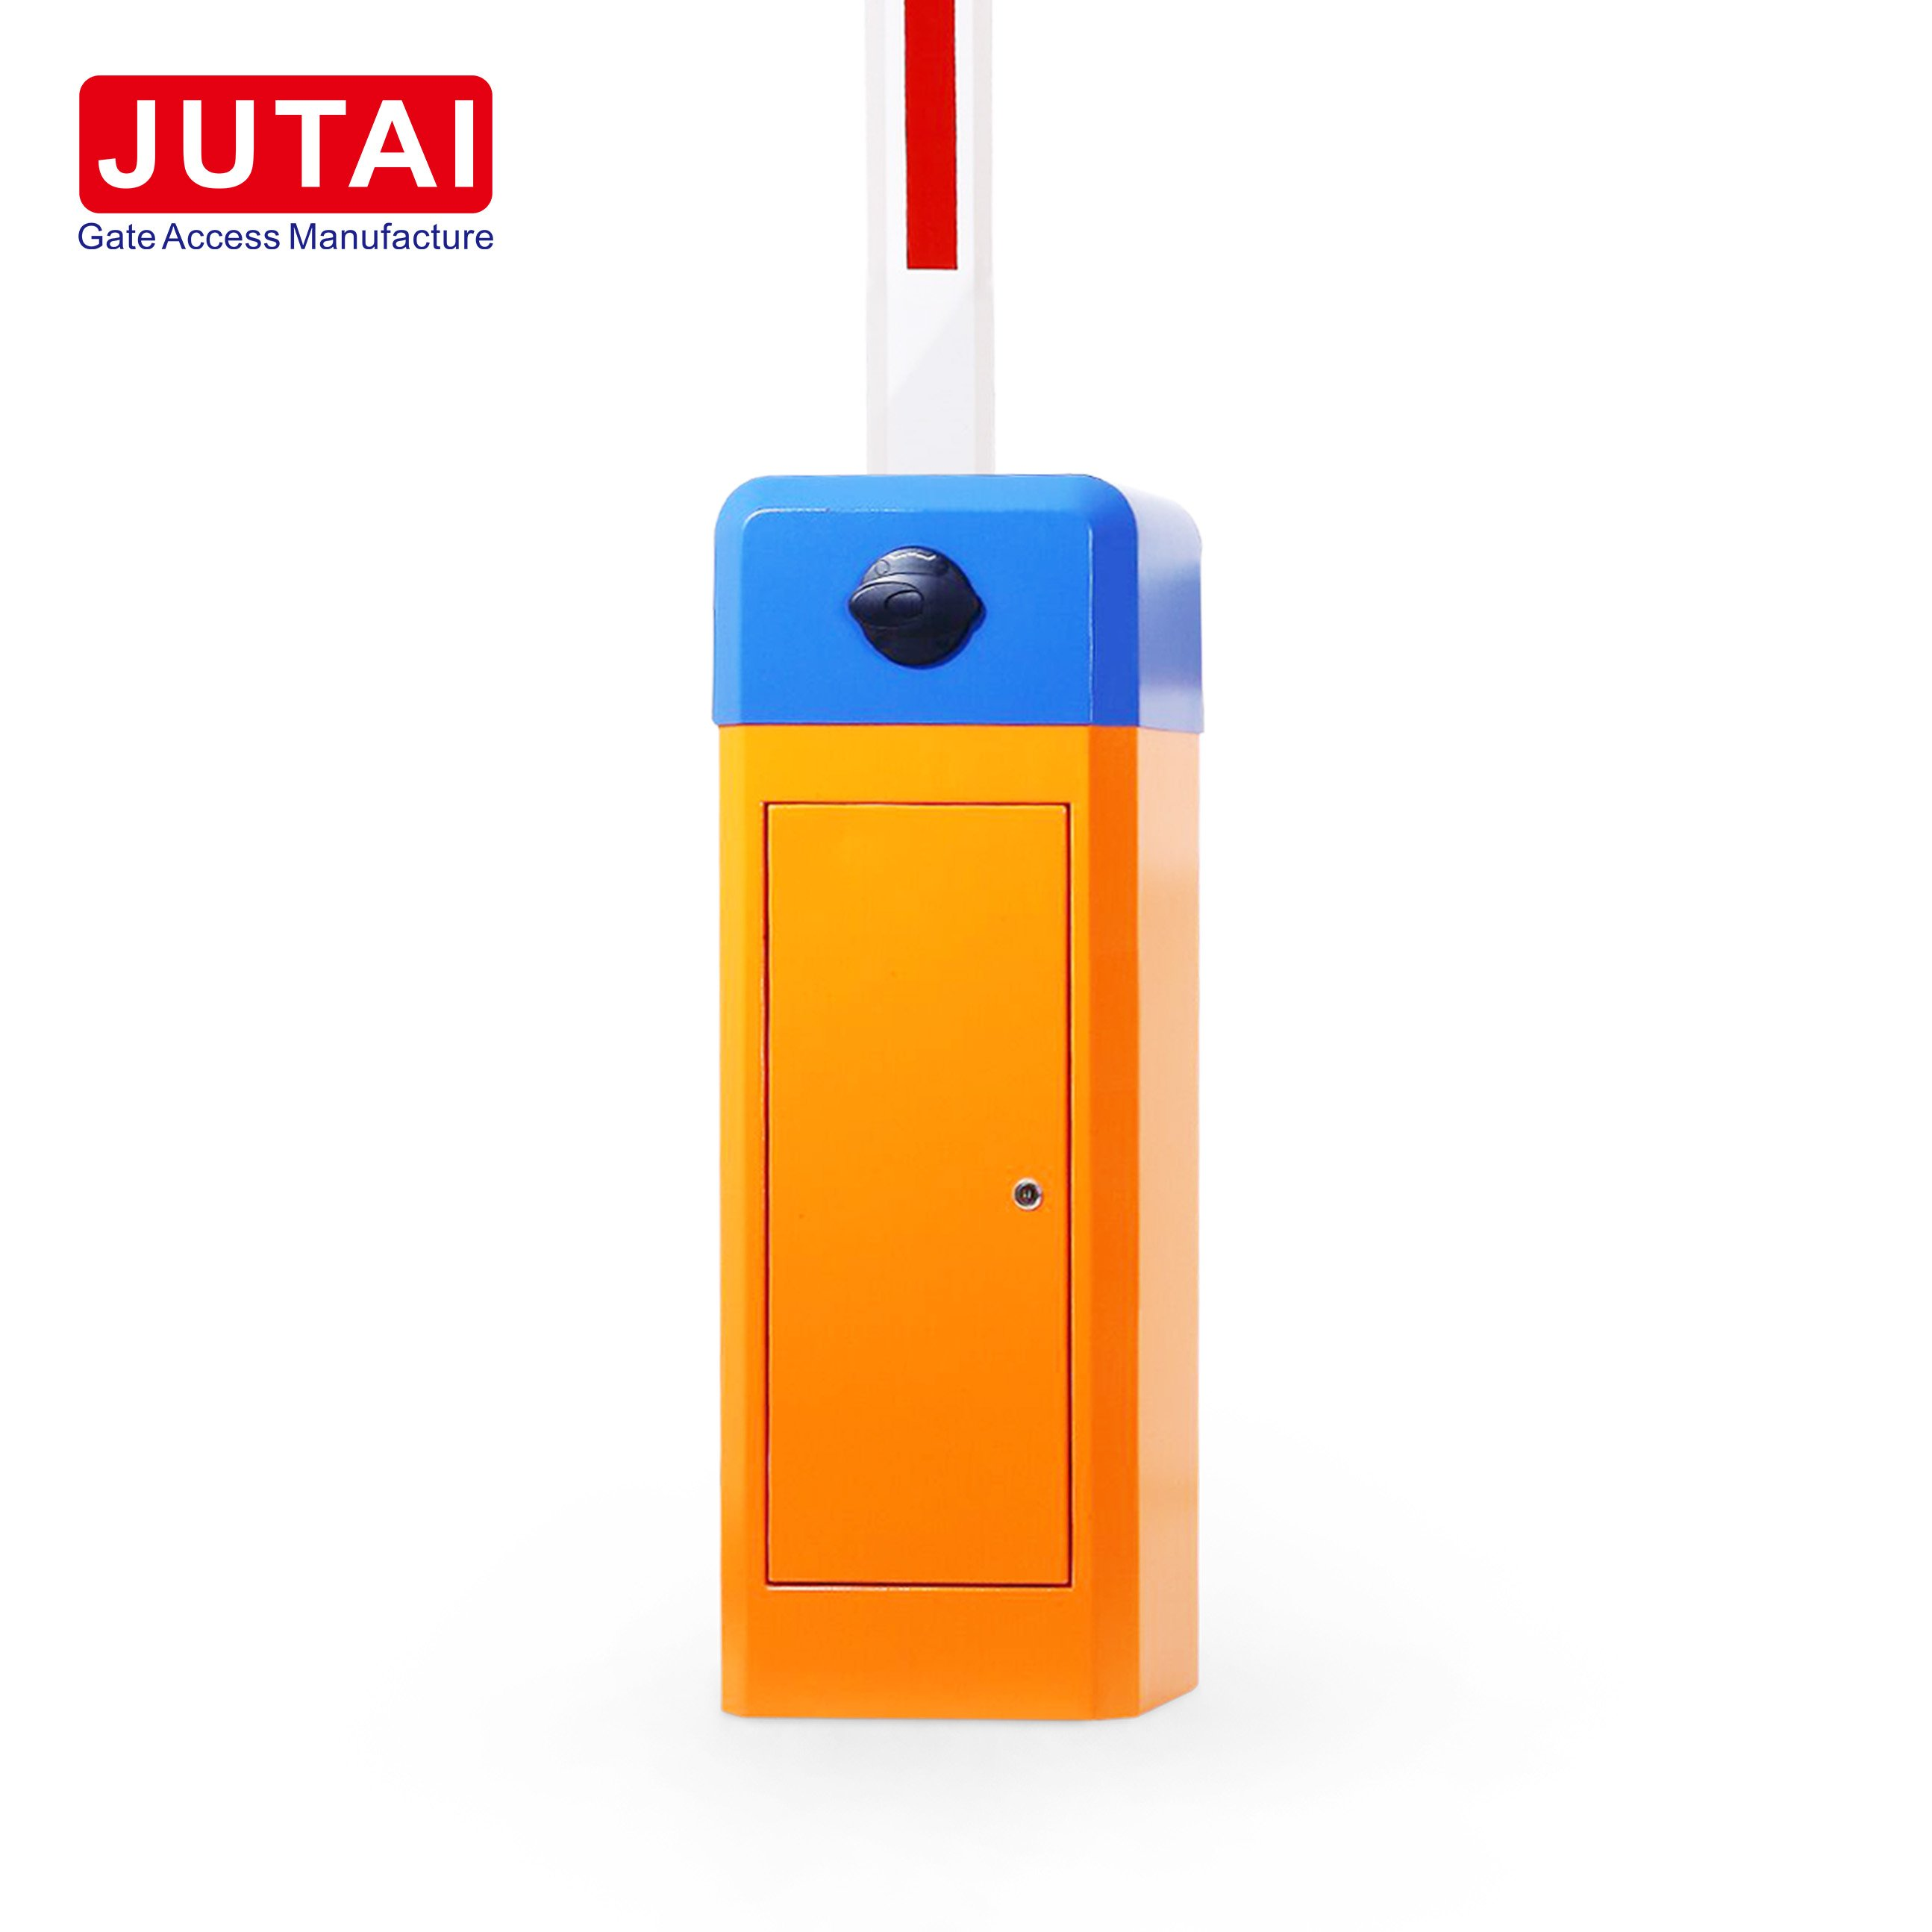 JUTAI Parking Barrier Gate